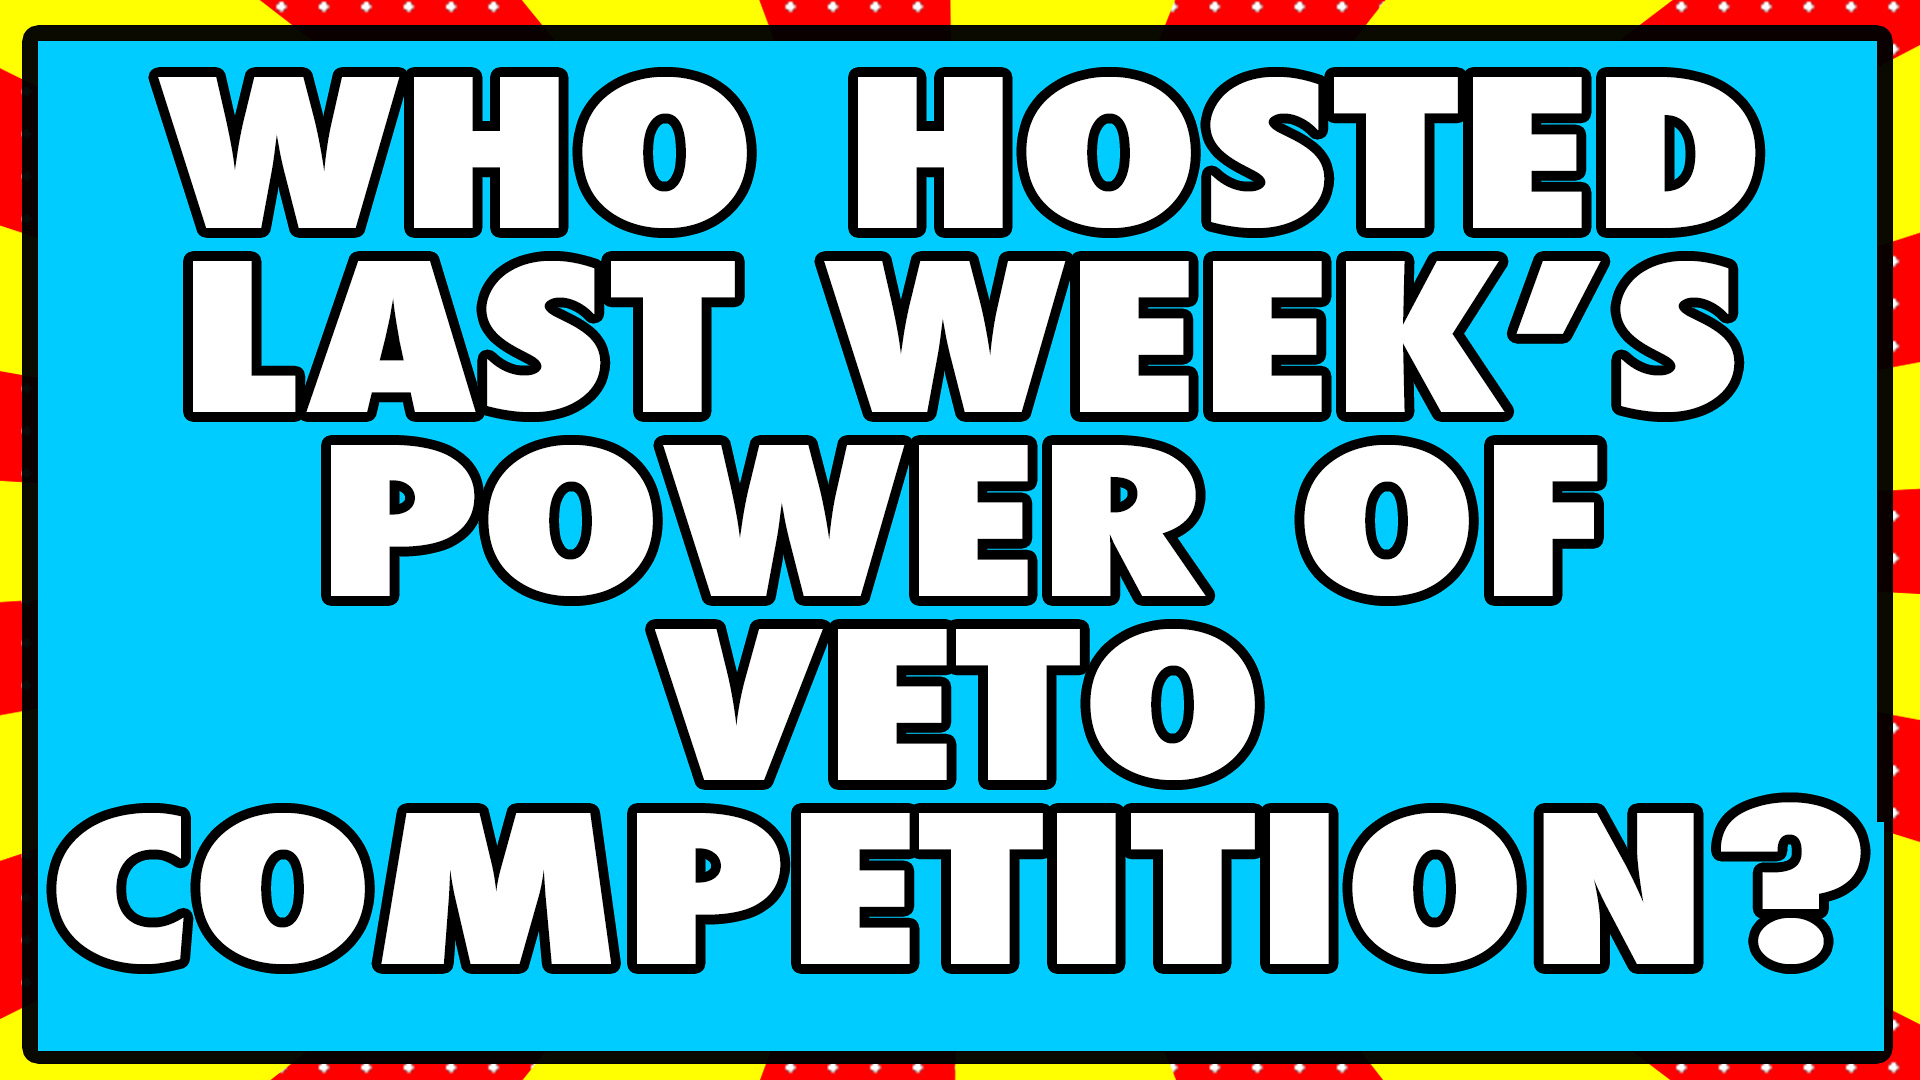 Who hosted last week's Power of Veto competition?